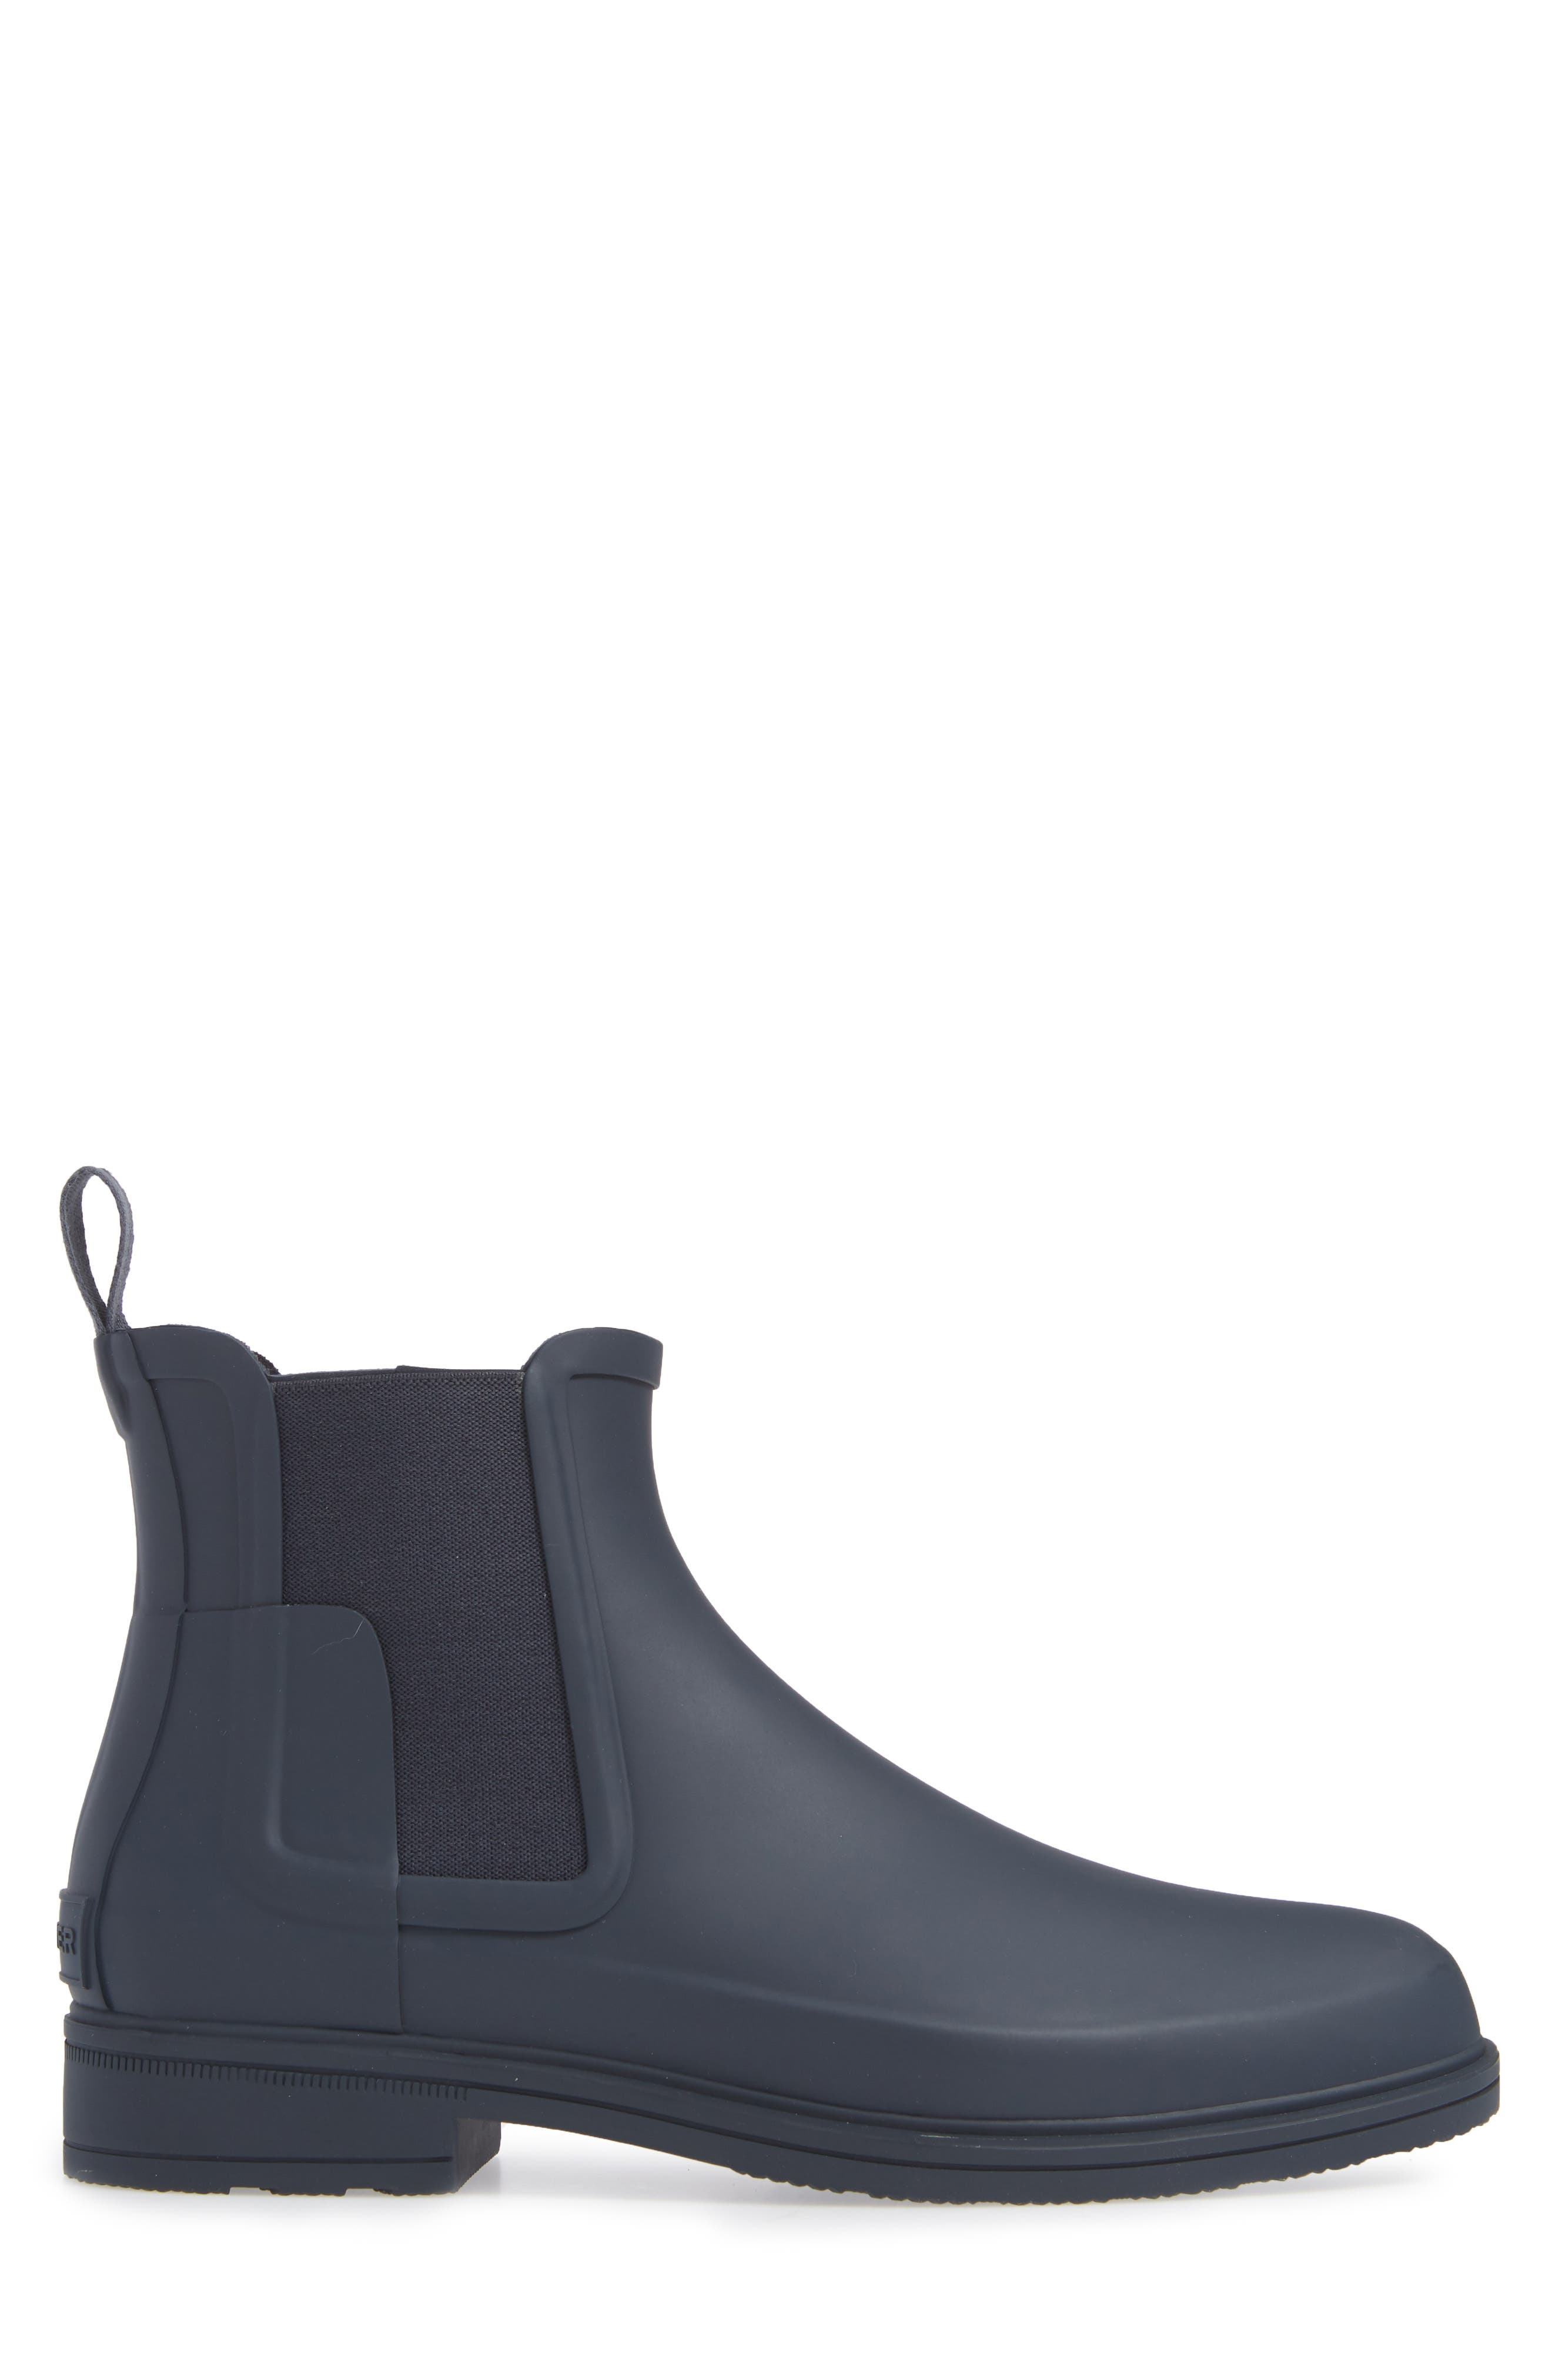 HUNTER, Original Refined Waterproof Chelsea Boot, Alternate thumbnail 3, color, NAVY RUBBER